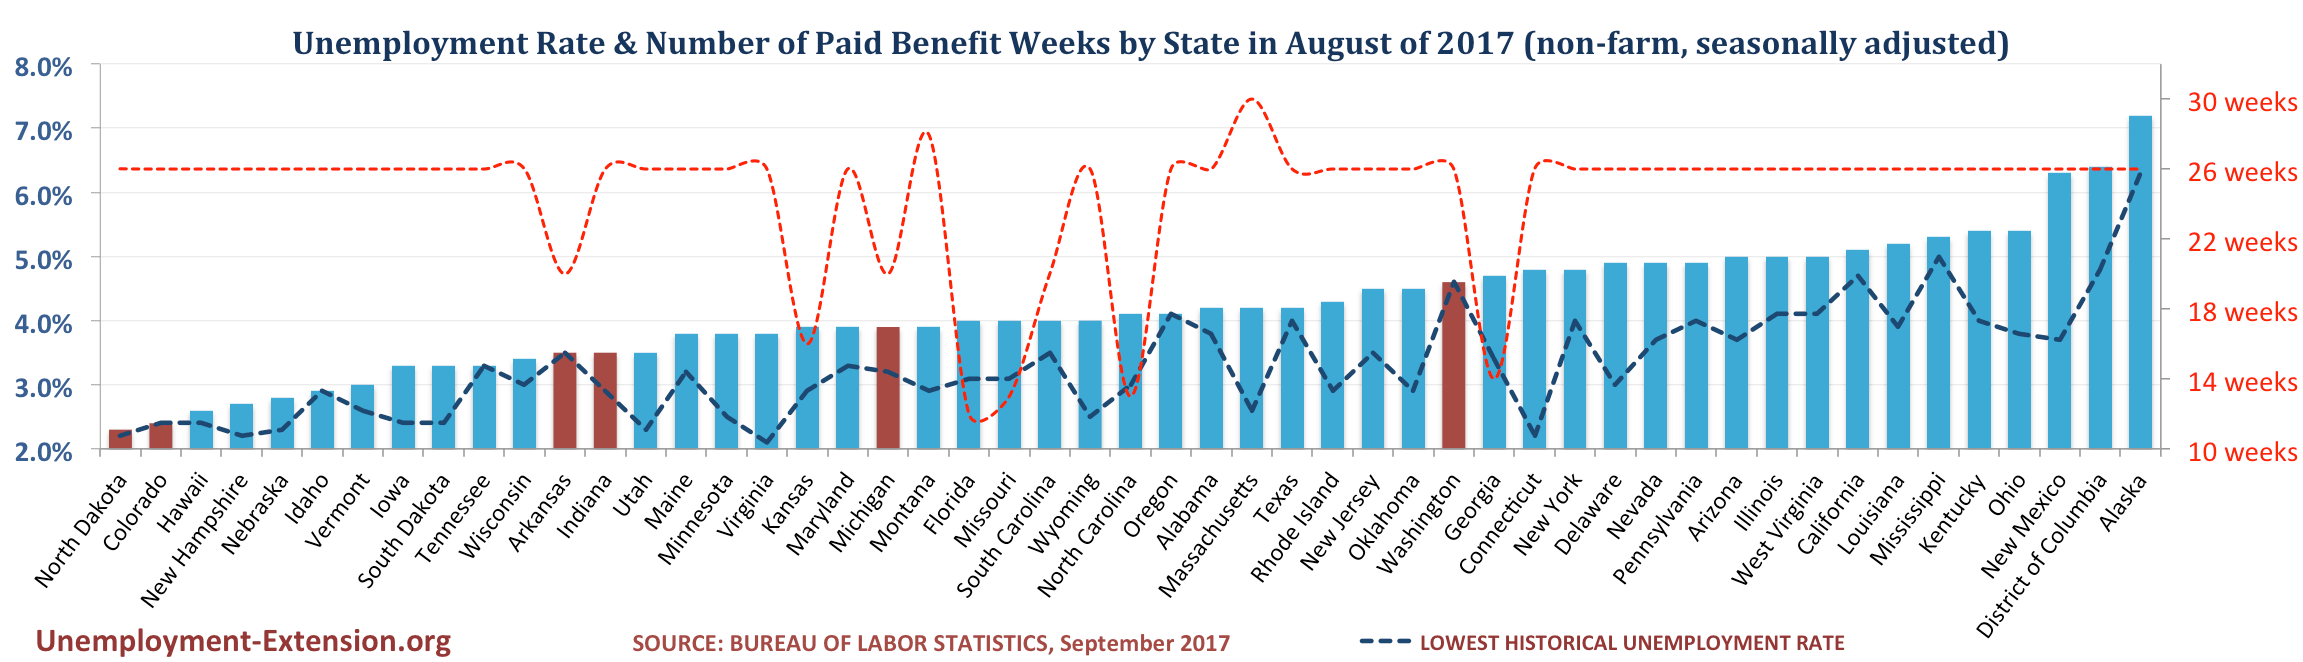 Unemployment Rate and Number of Paid Unemployment Benefit weeks by State (non-farm, seasonally adjusted) in September of 2017